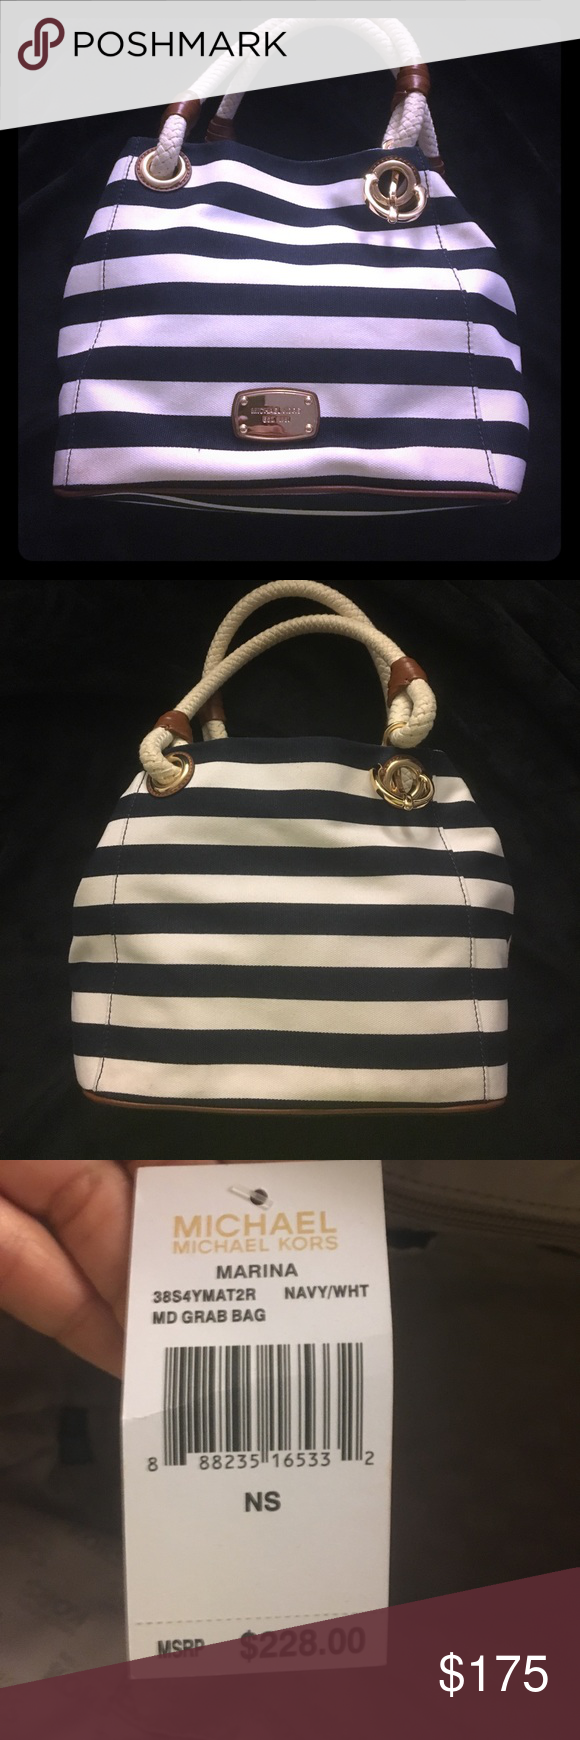 NWT Michael Kors Marina tote NWT Michael Kors Marina tote, navy blue and white canvas stripes with tan leather and gold anchor details, and rope handles.  Inside has 1 large zippered pocket and 4 inside pockets Michael Kors Bags Totes